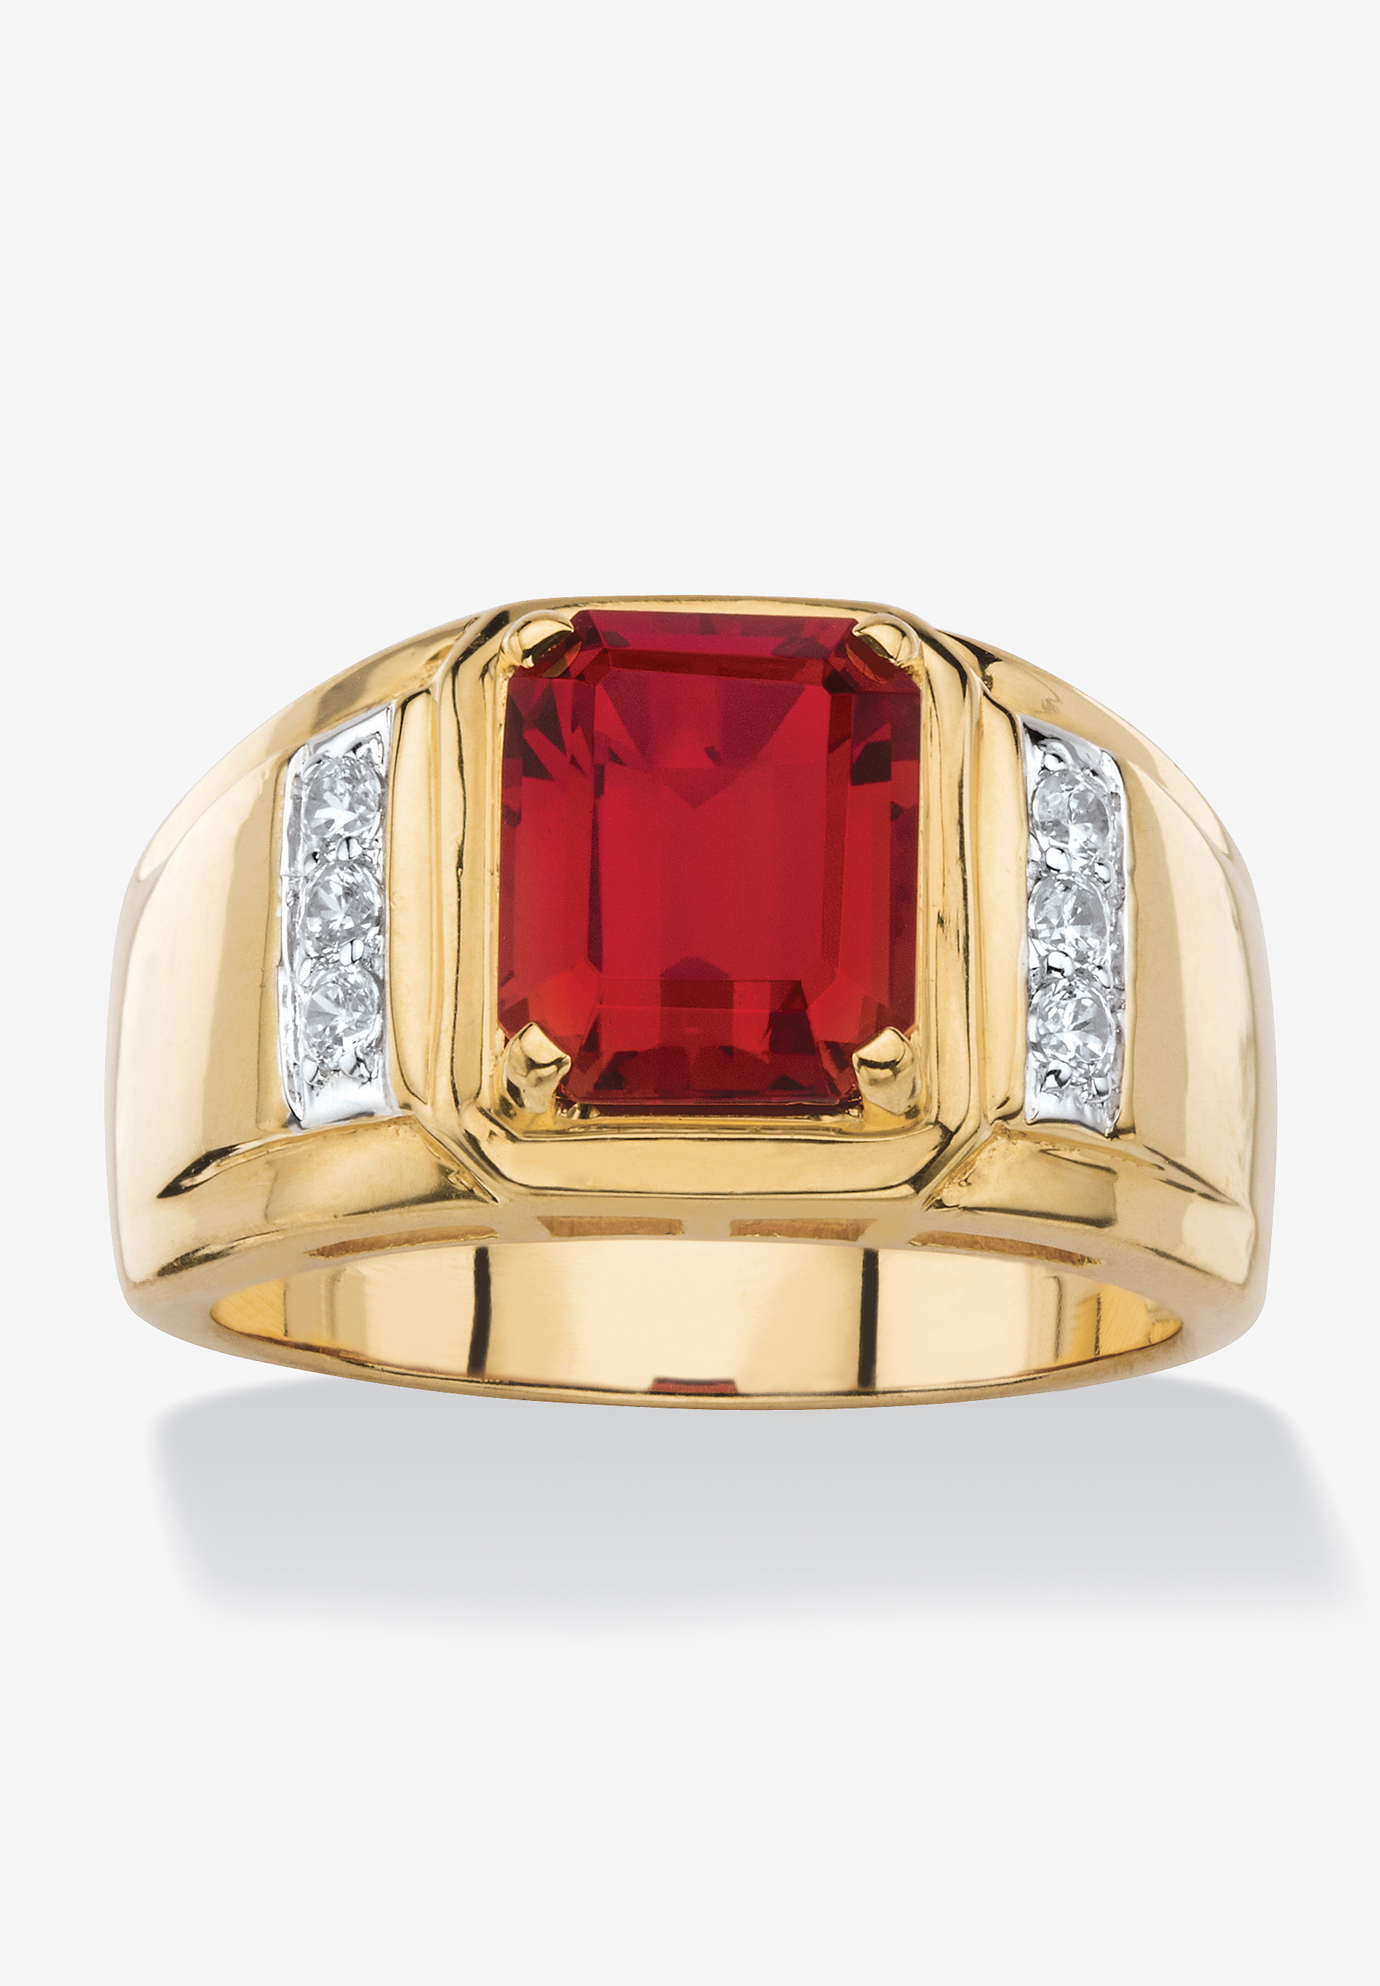 Men's 18K Gold-plated Genuine Diamond and Emerald Cut Garnet Ring,